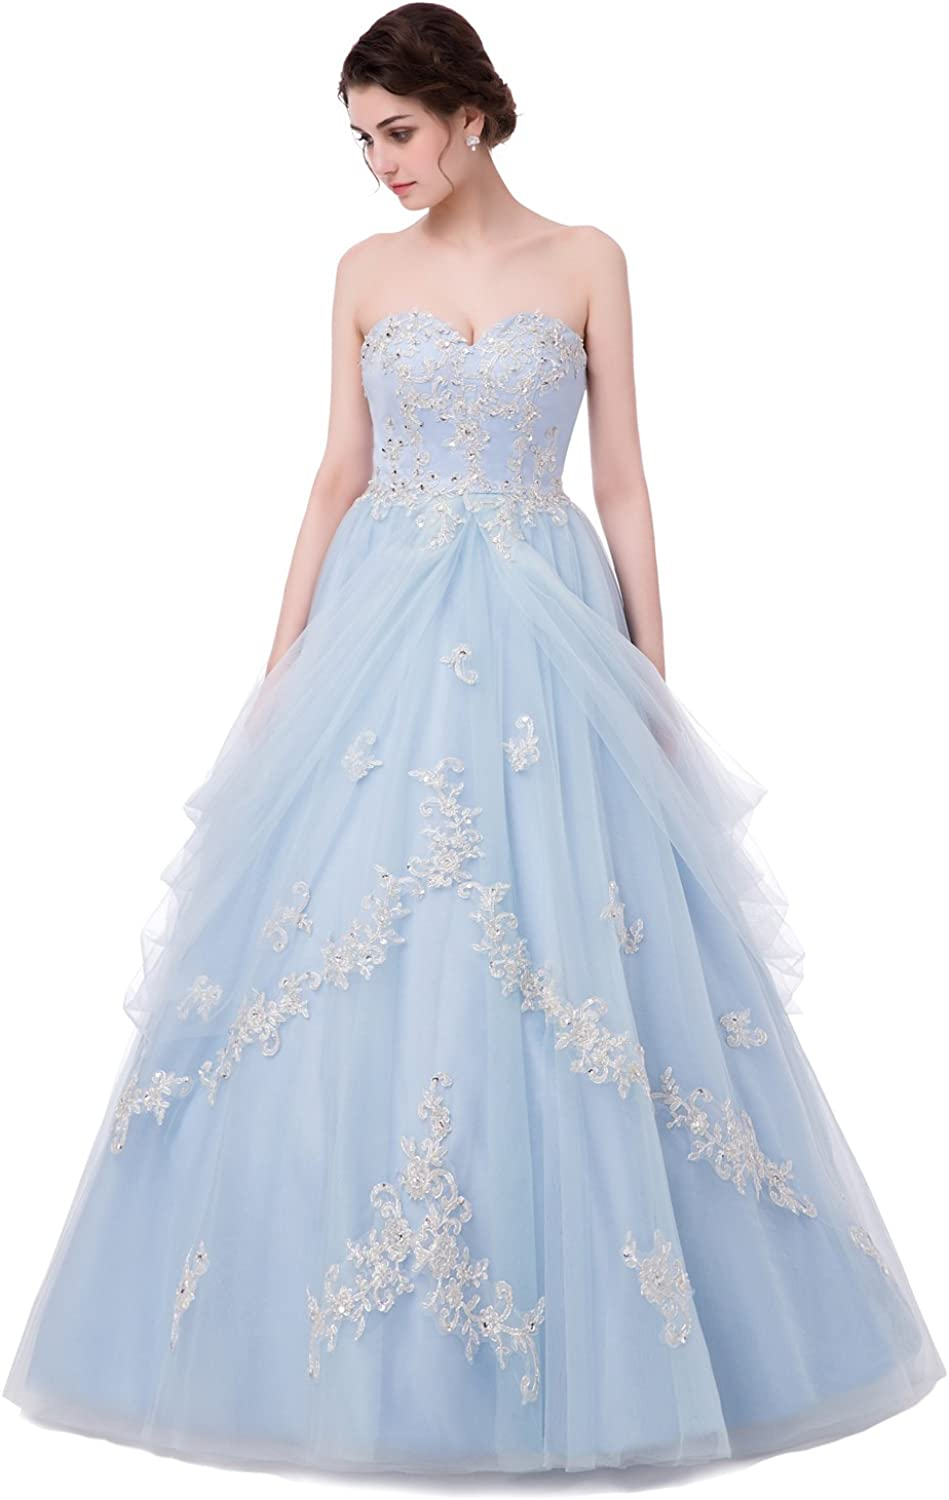 Quinceanera Dresses Prom Dress Long Appliqué Princess Girl Pageant1416 Year